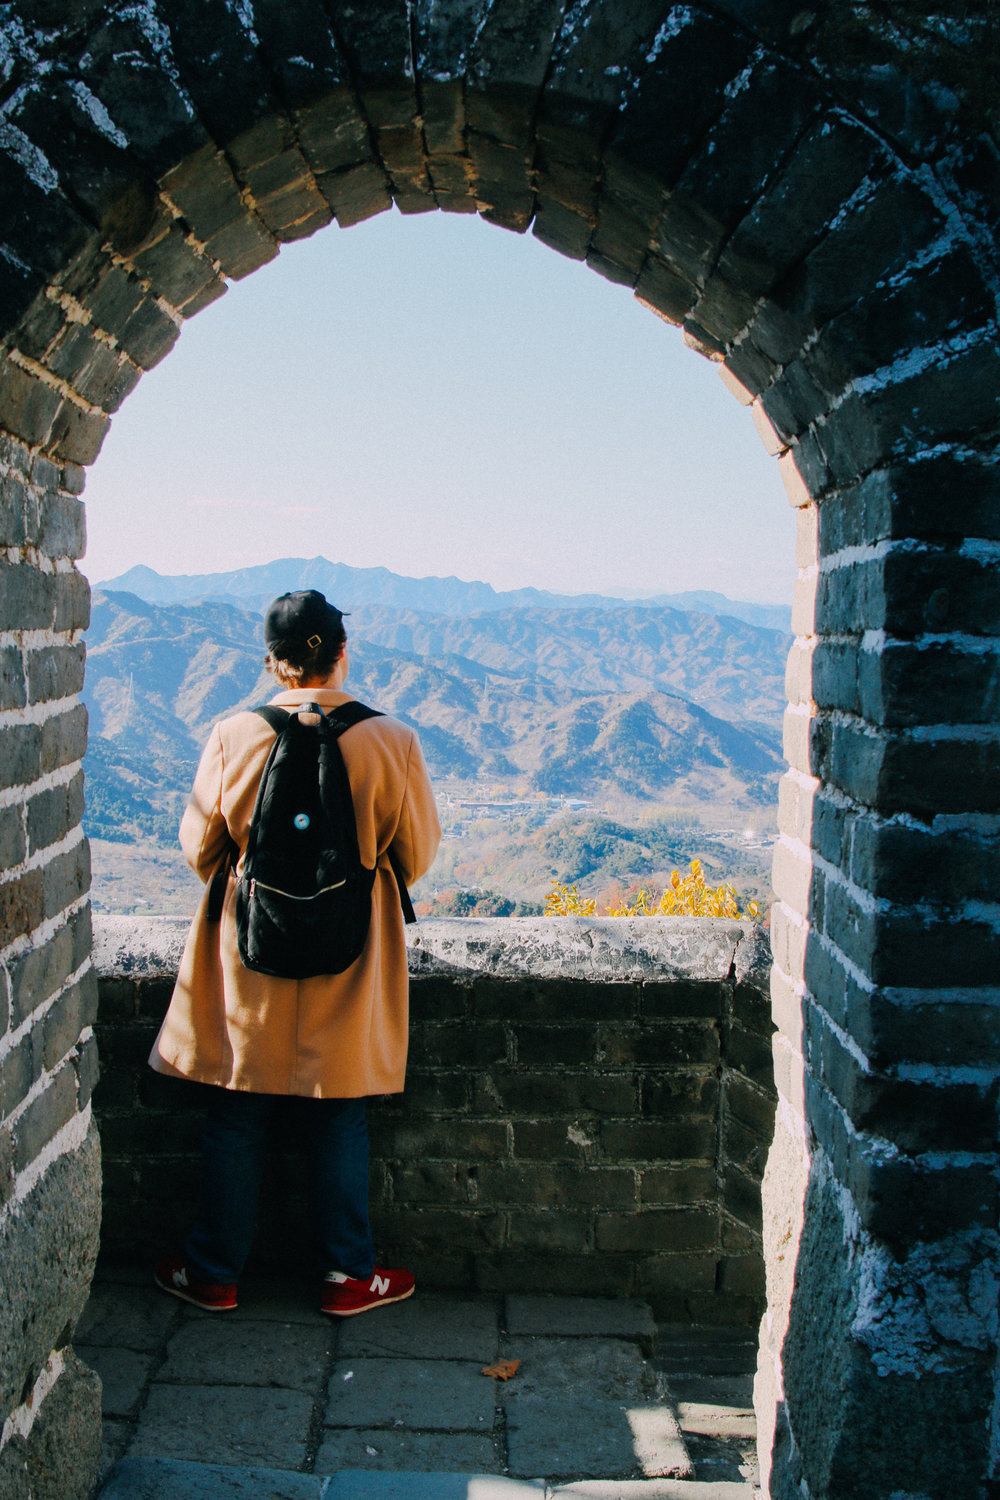 GreatWall-42.jpg